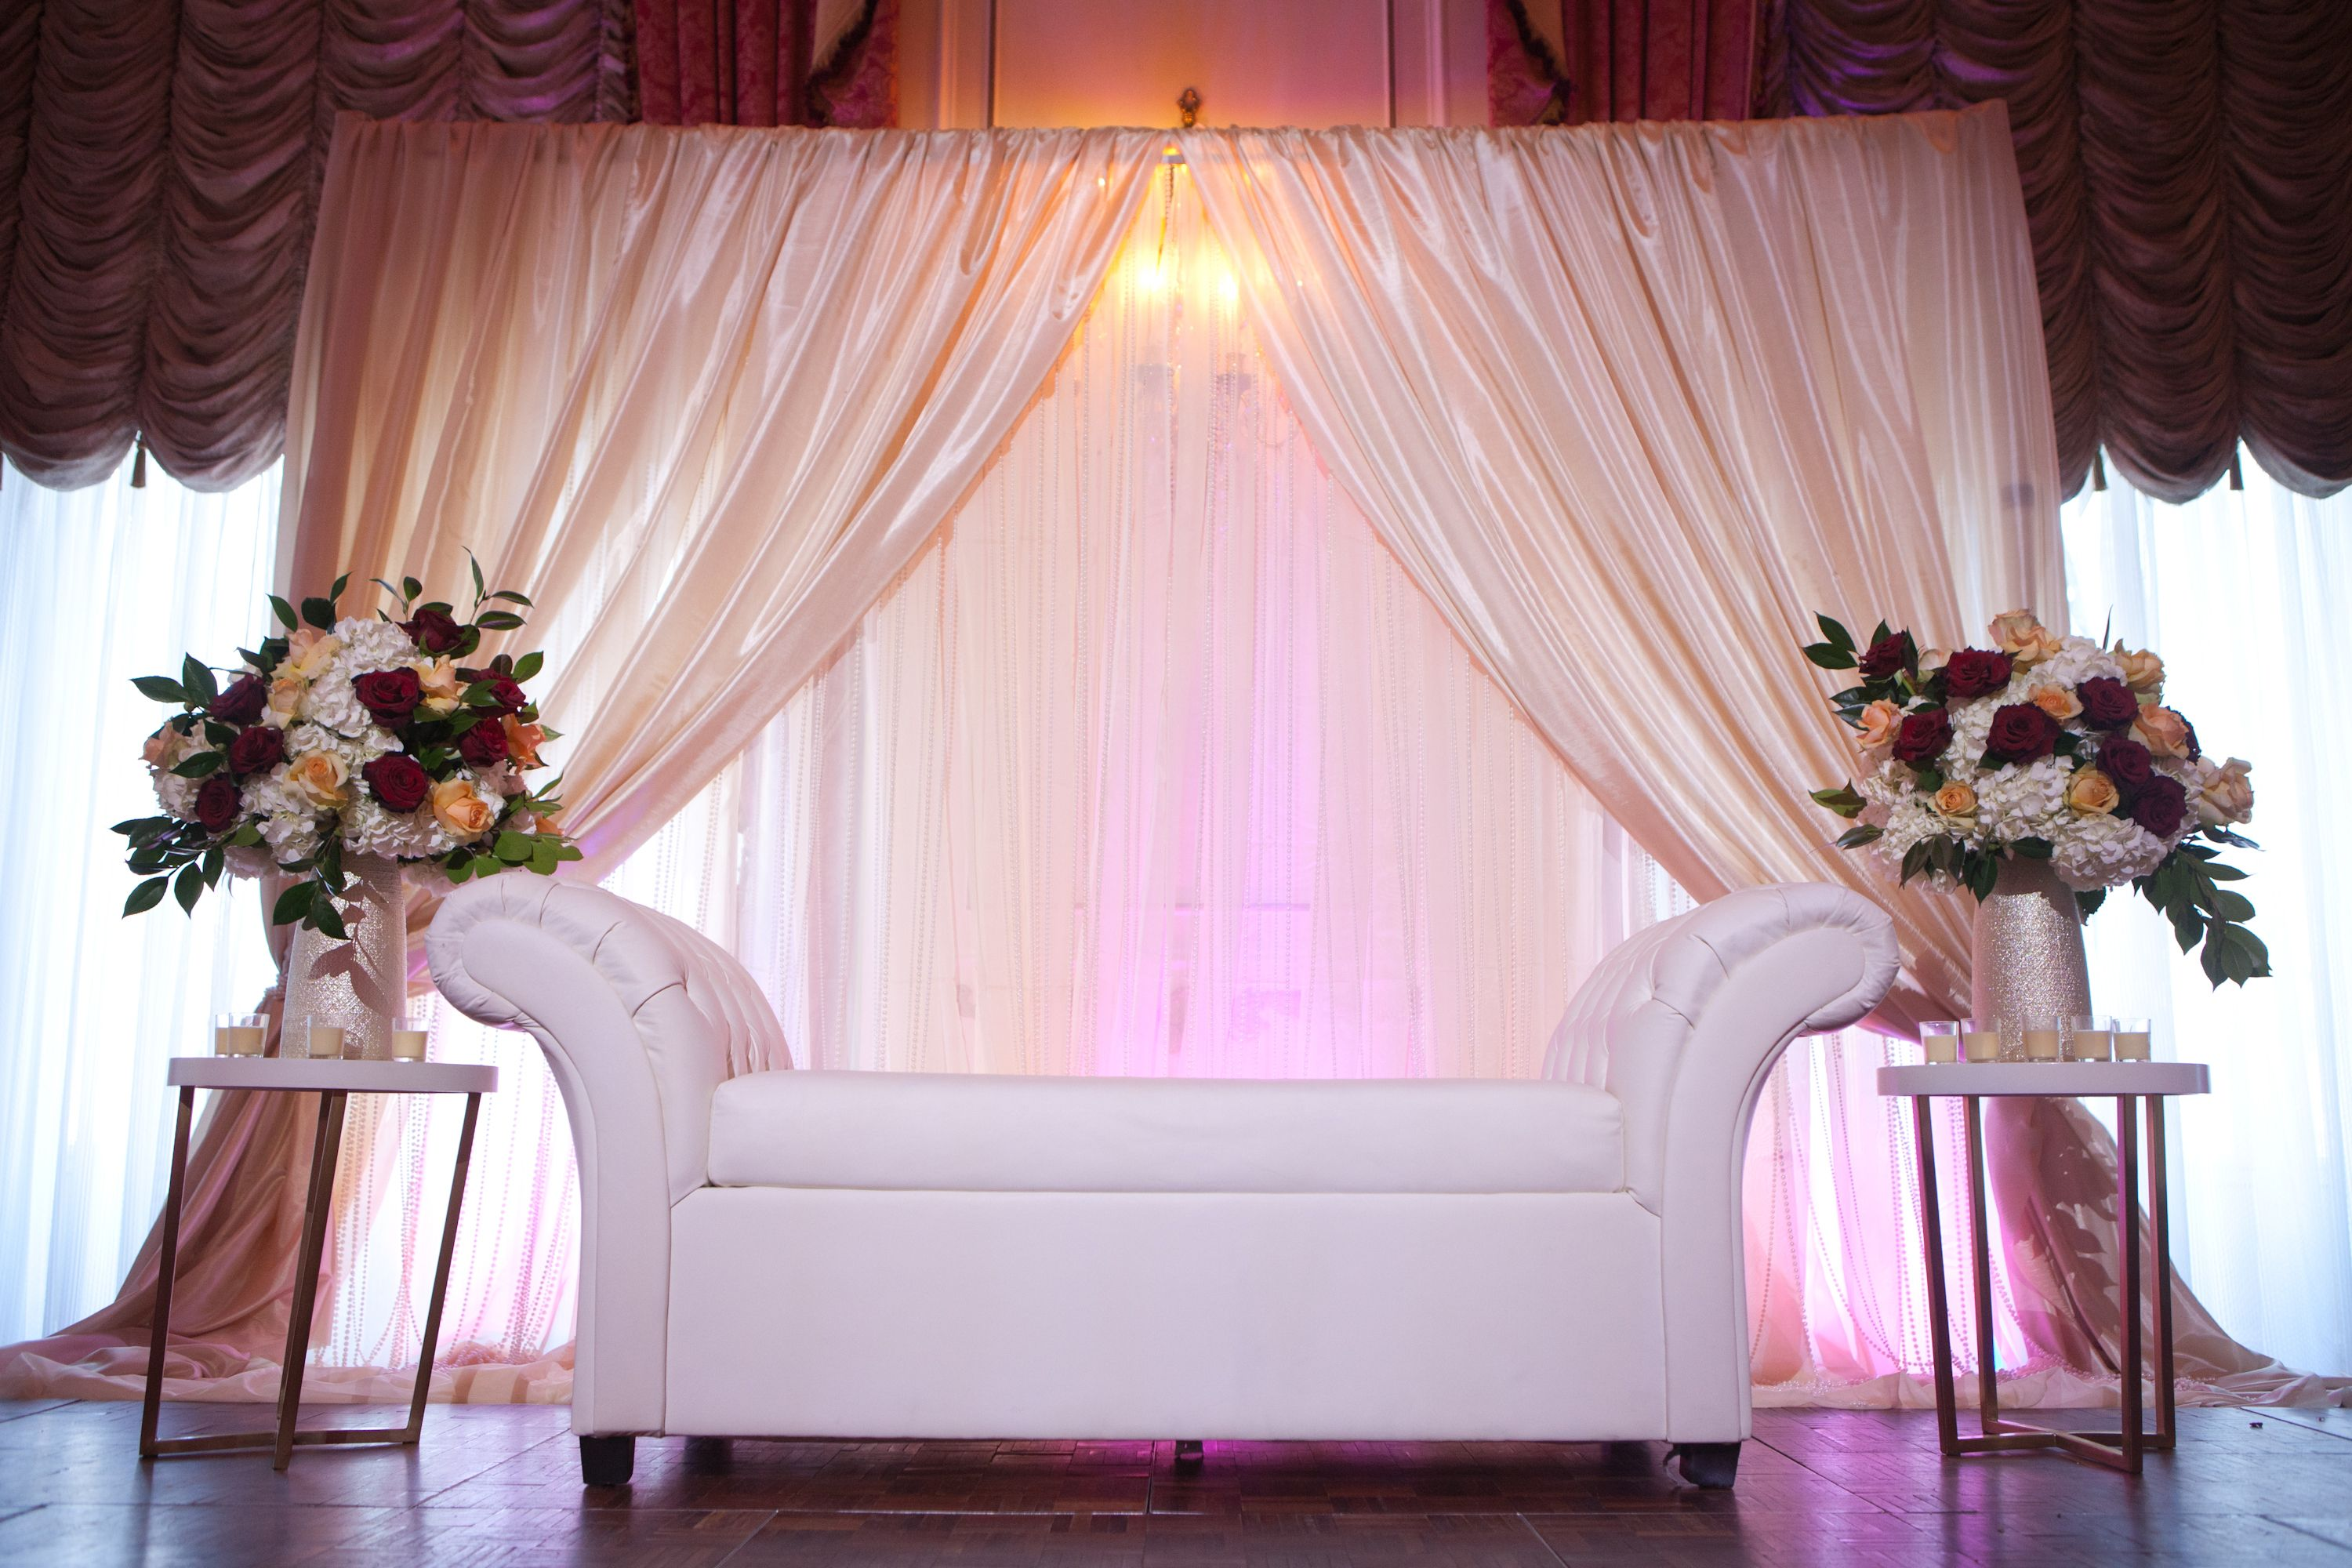 Taj Boston Muslim Wedding Reception Backdrop, Ivory Wedding ...